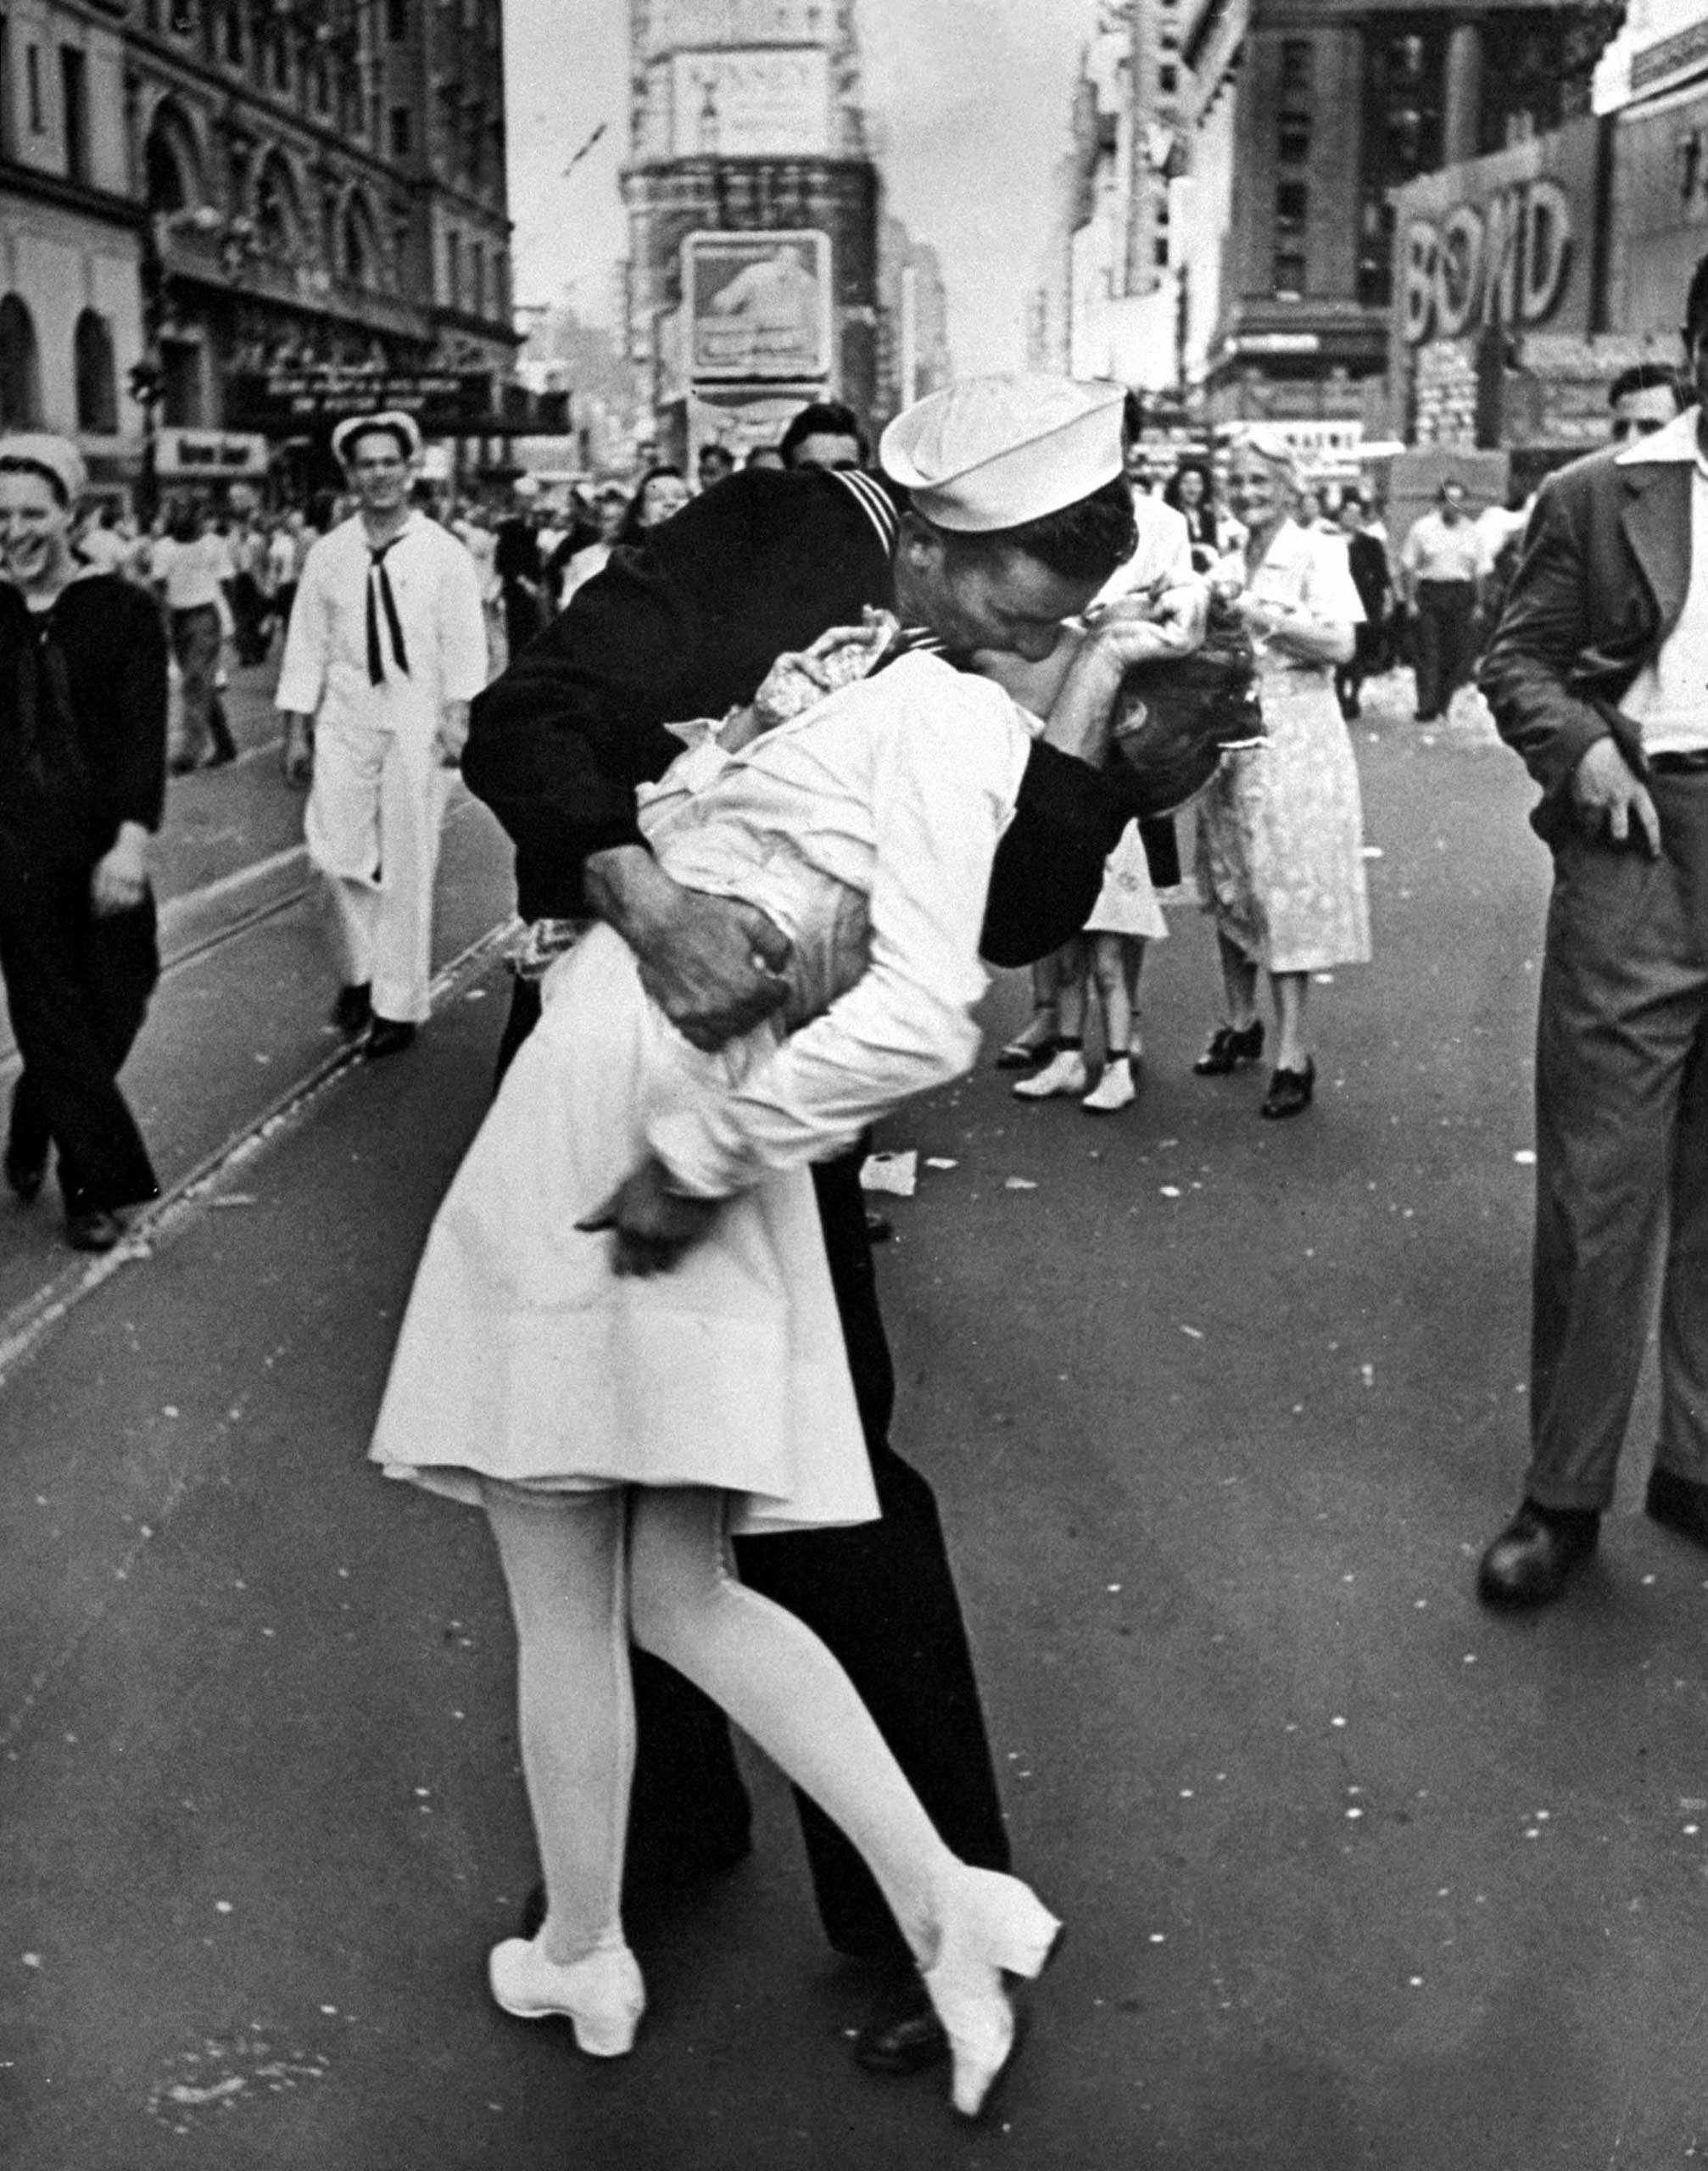 The iconic World War II kiss taken in 1945 in New York to celebrate the US victory over Japan